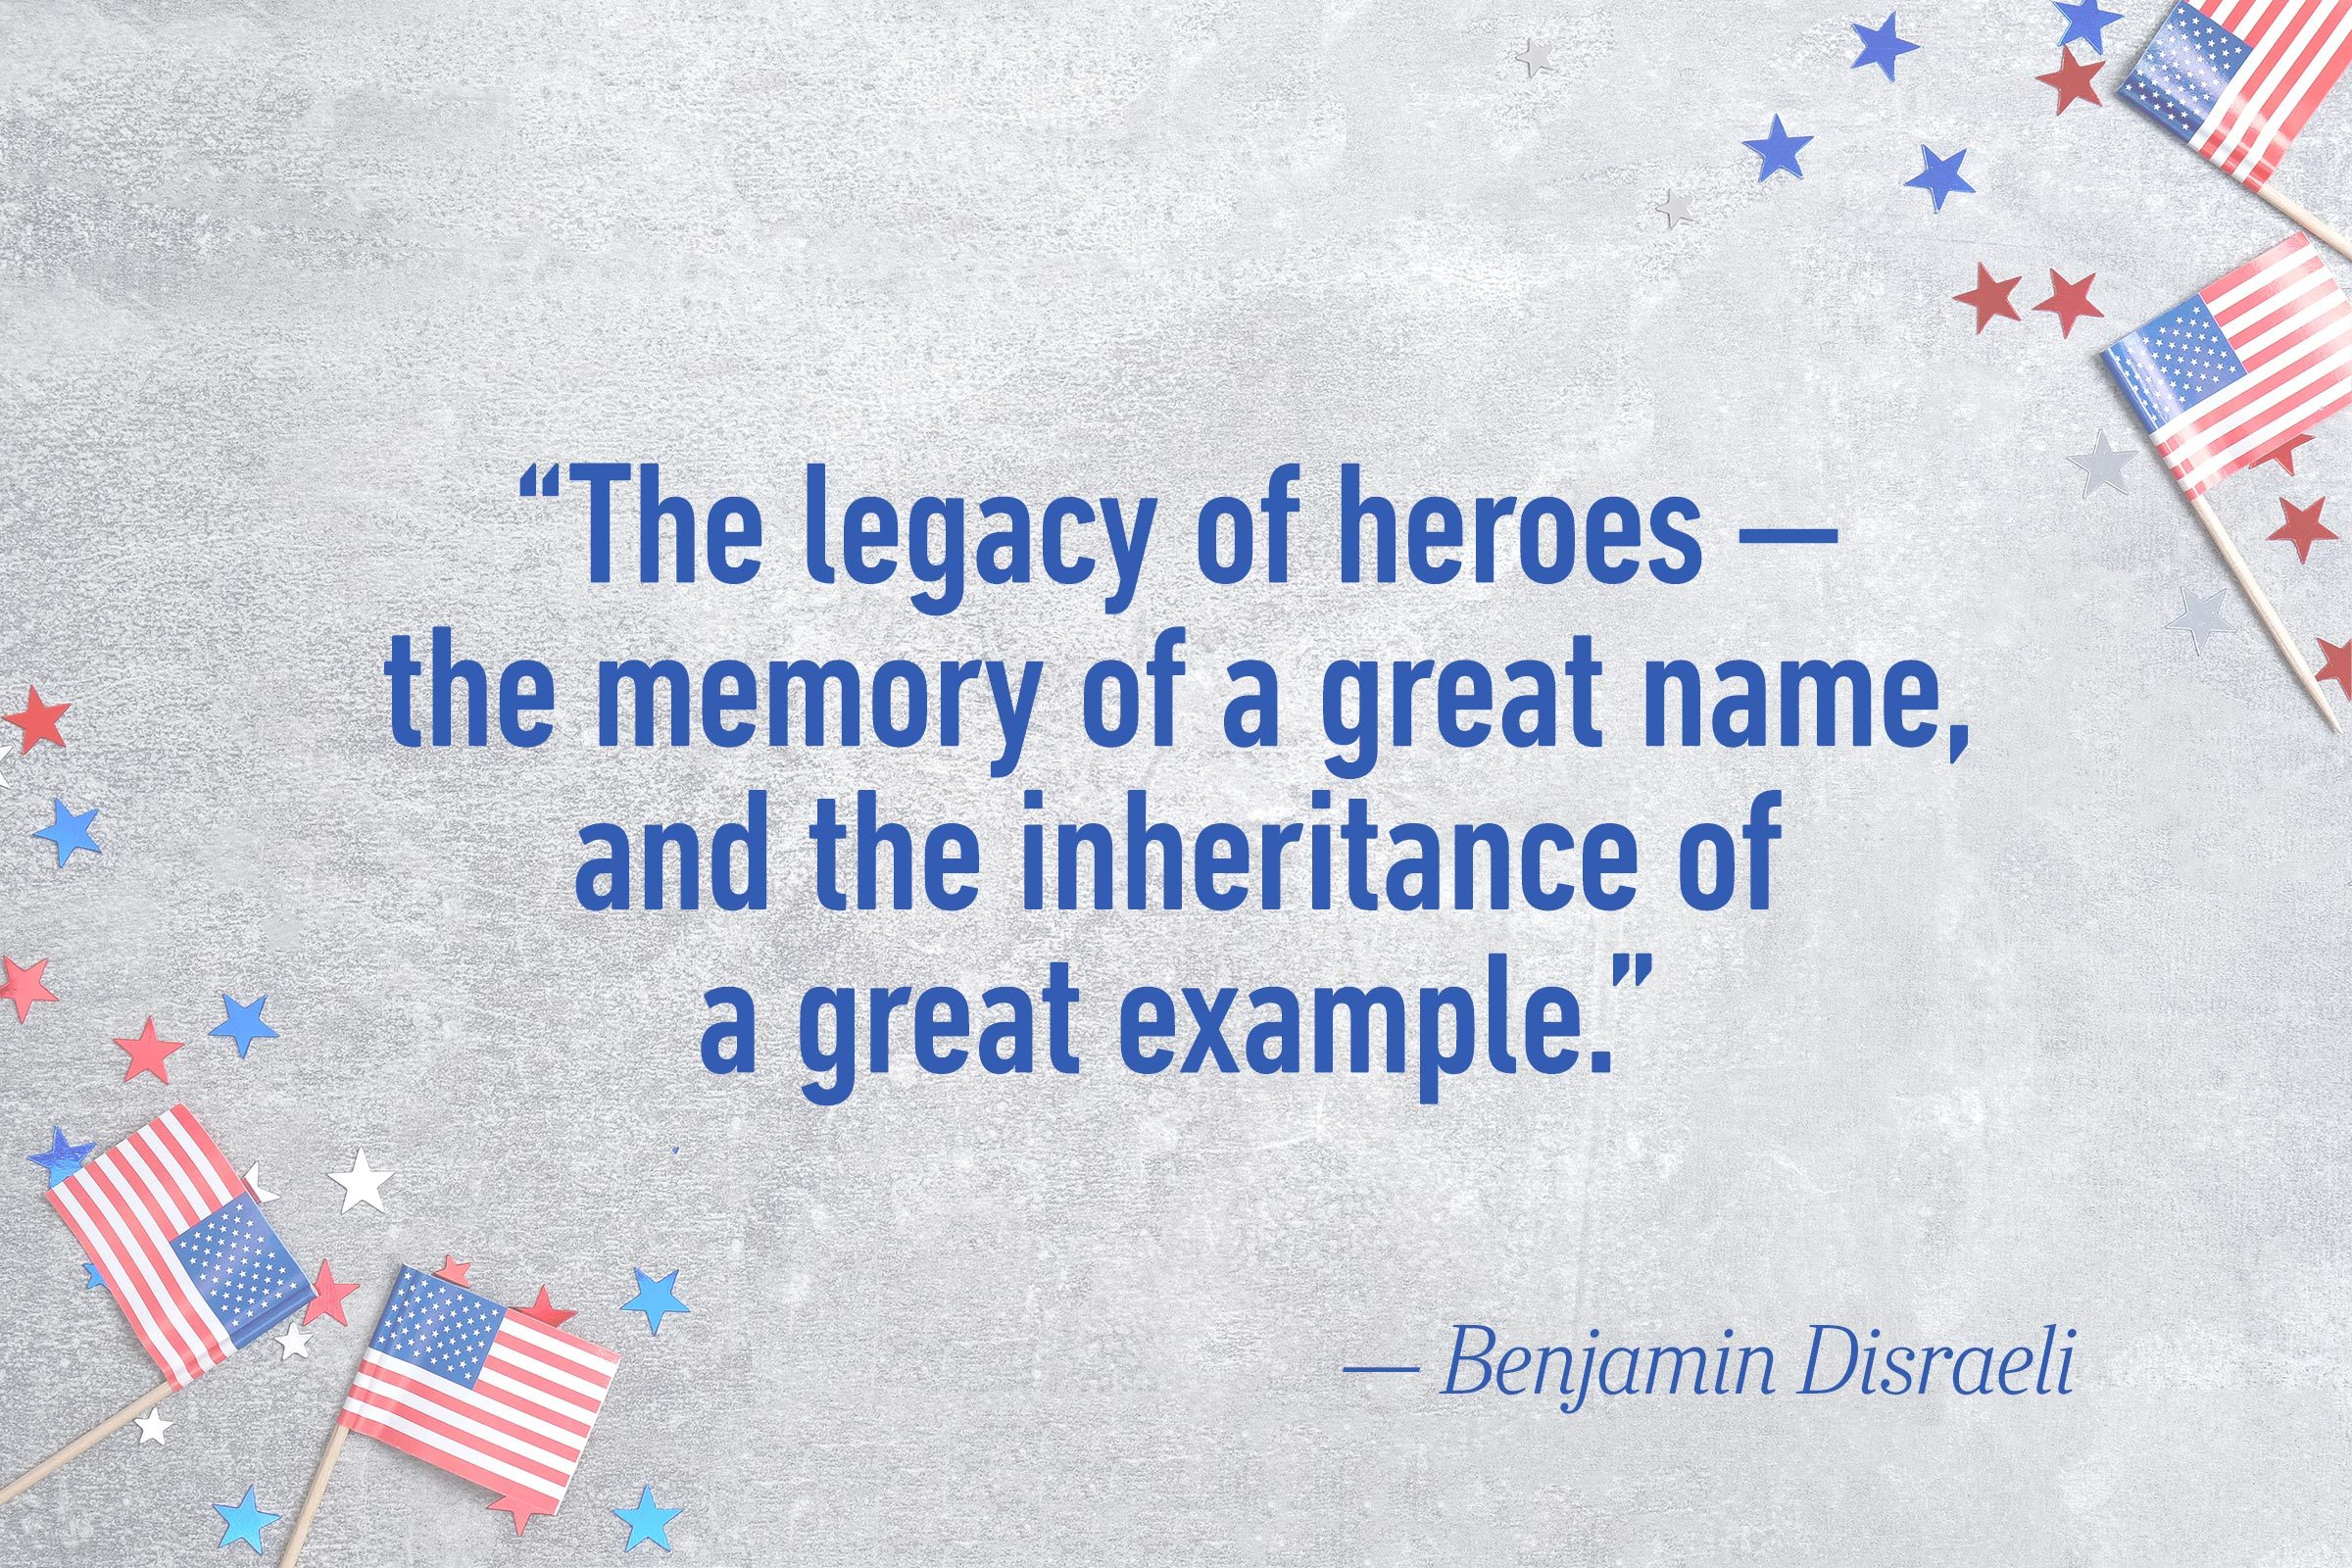 """The legacy of heroes — the memory of a great name, and the inheritance of a great example.""—Benjamin Disraeli"